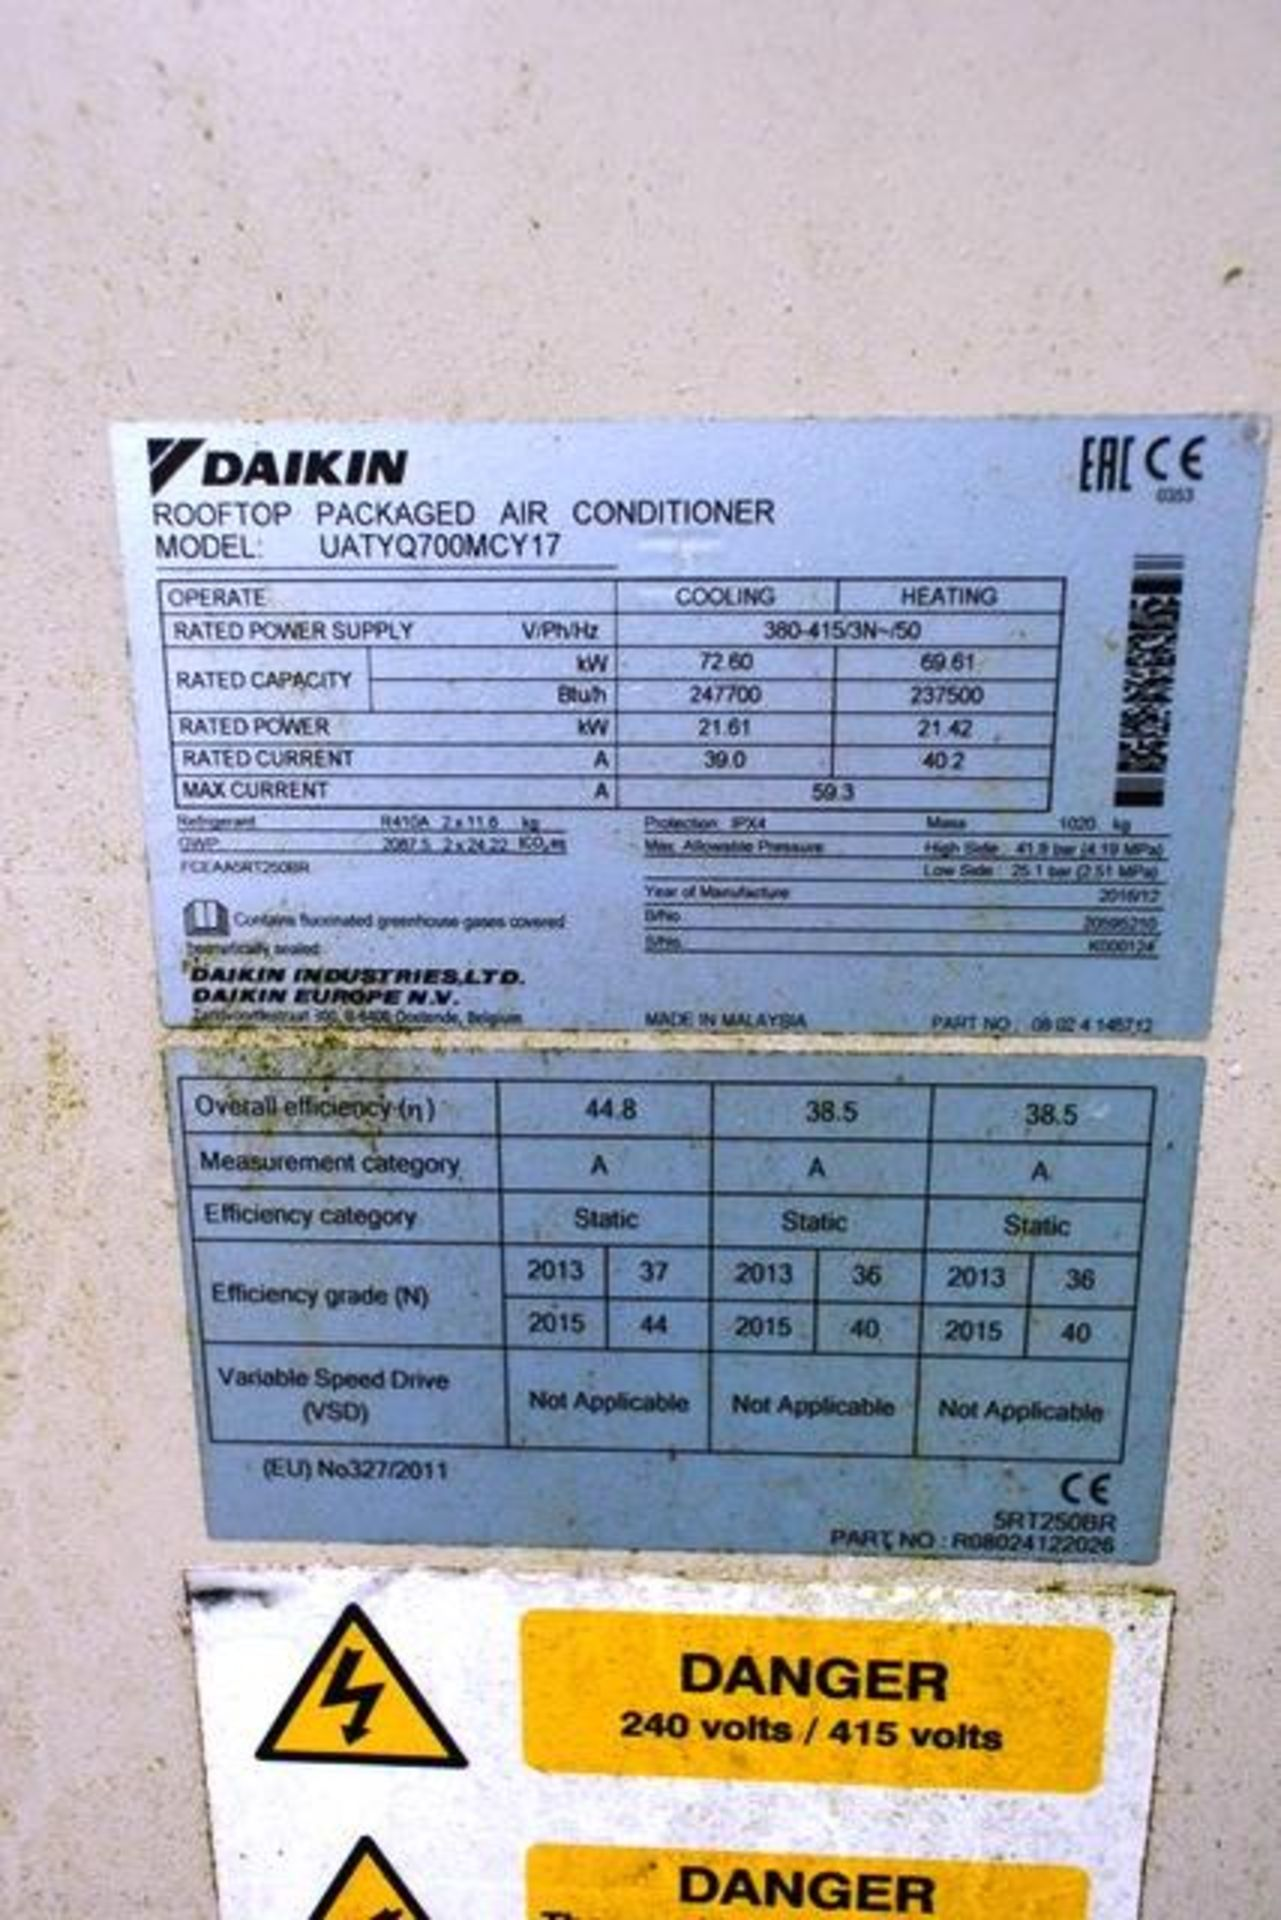 Daiken UATY Q700MCY17 rooftop packaged air conditioner, serial no. K000124 (2016), R410A, rated - Image 2 of 2